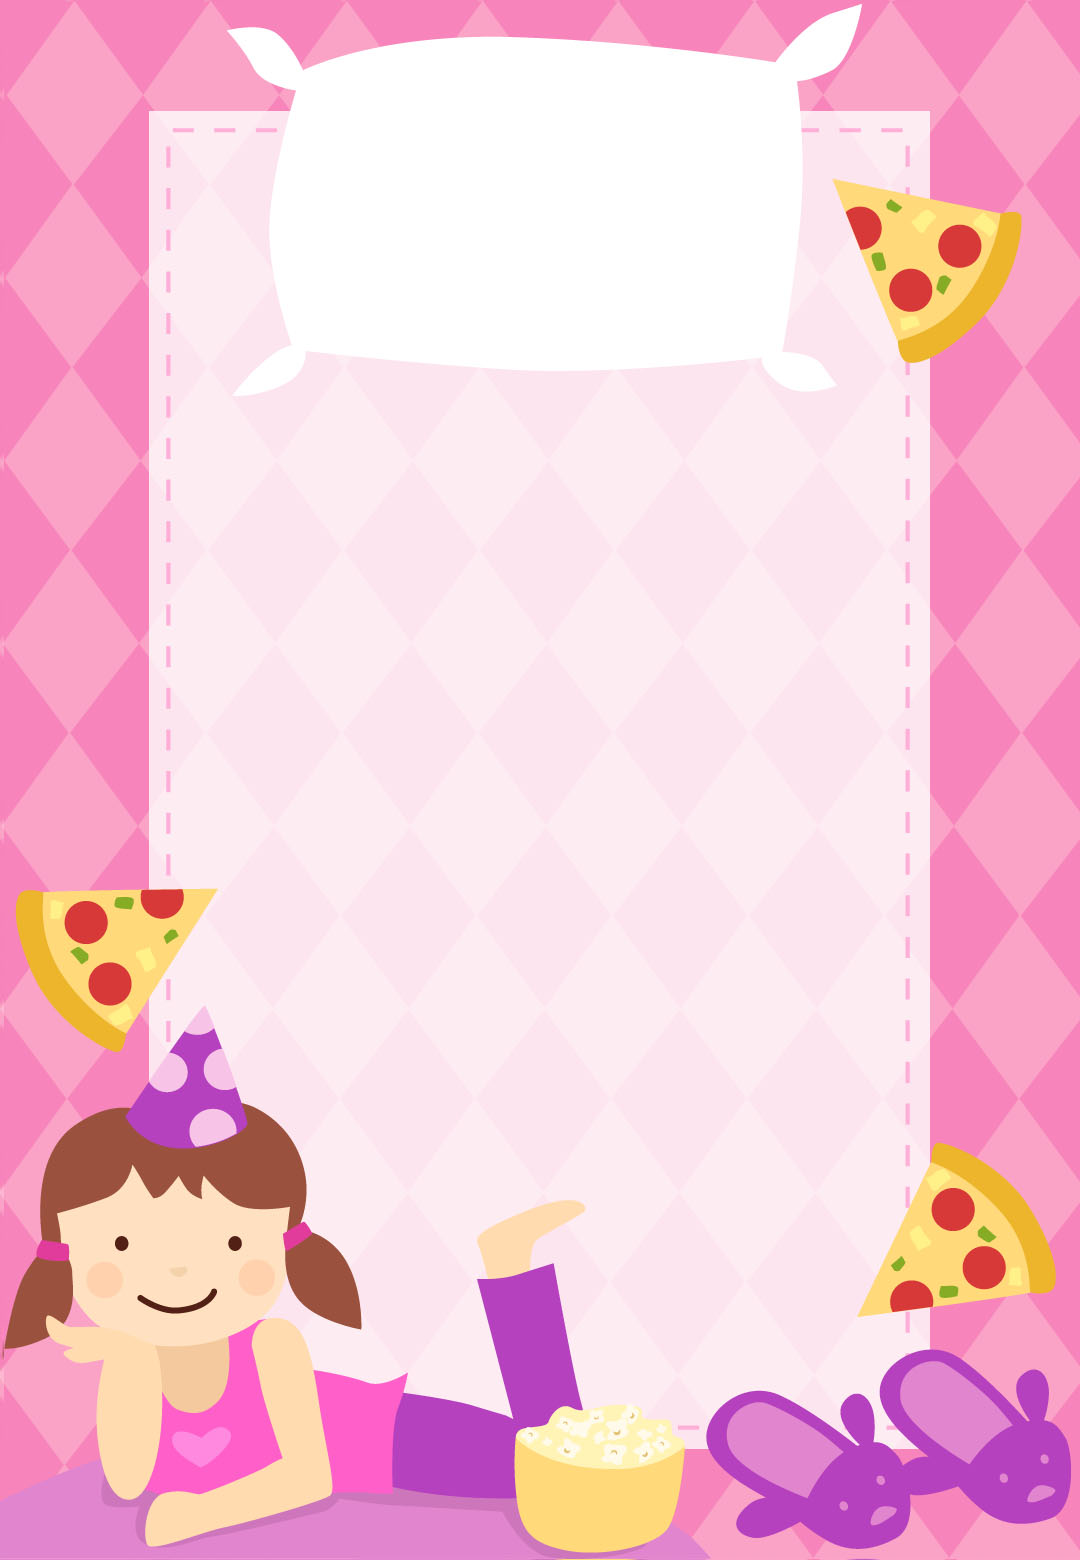 Slumber Party Invitation IdeasKitty Baby Love